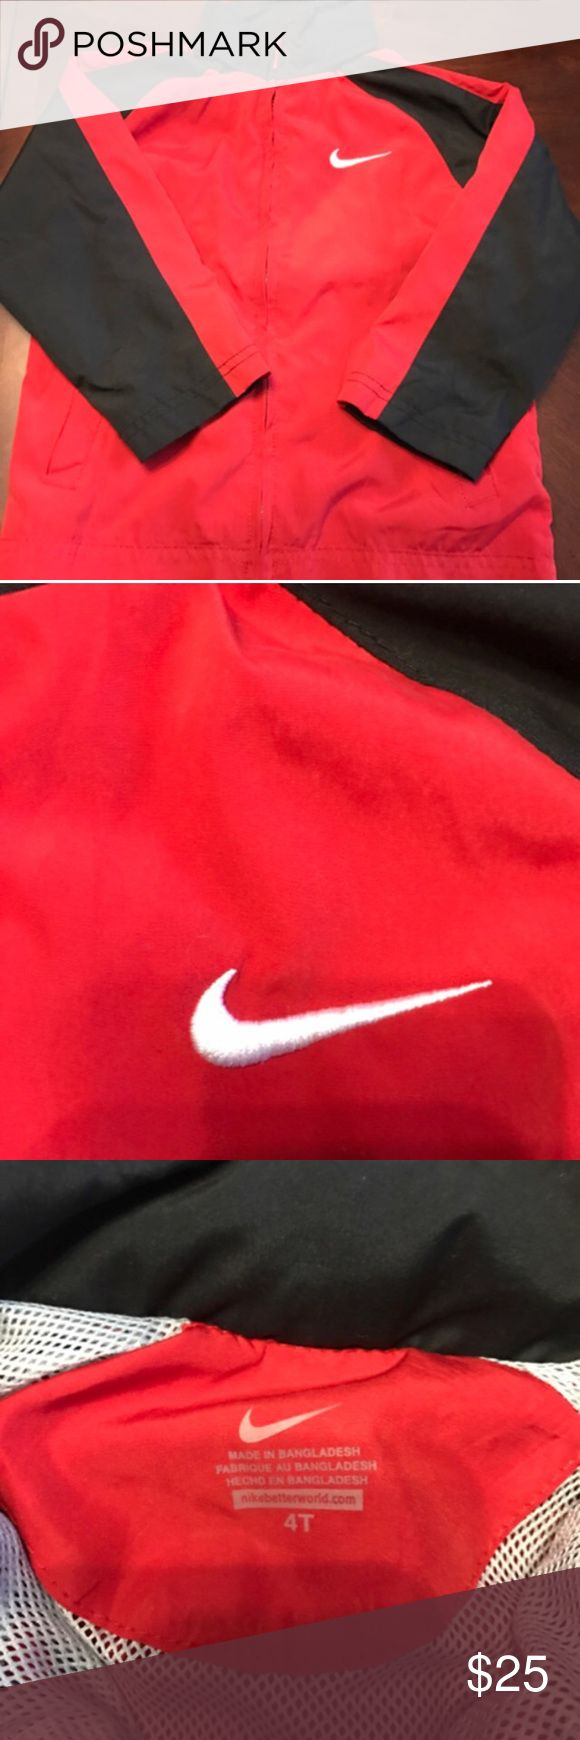 Like new red and black boys Nike nylon jacket Great jacket for spring or fall. There's also a hood that rolls up into the neckline. Nike Jackets & Coats